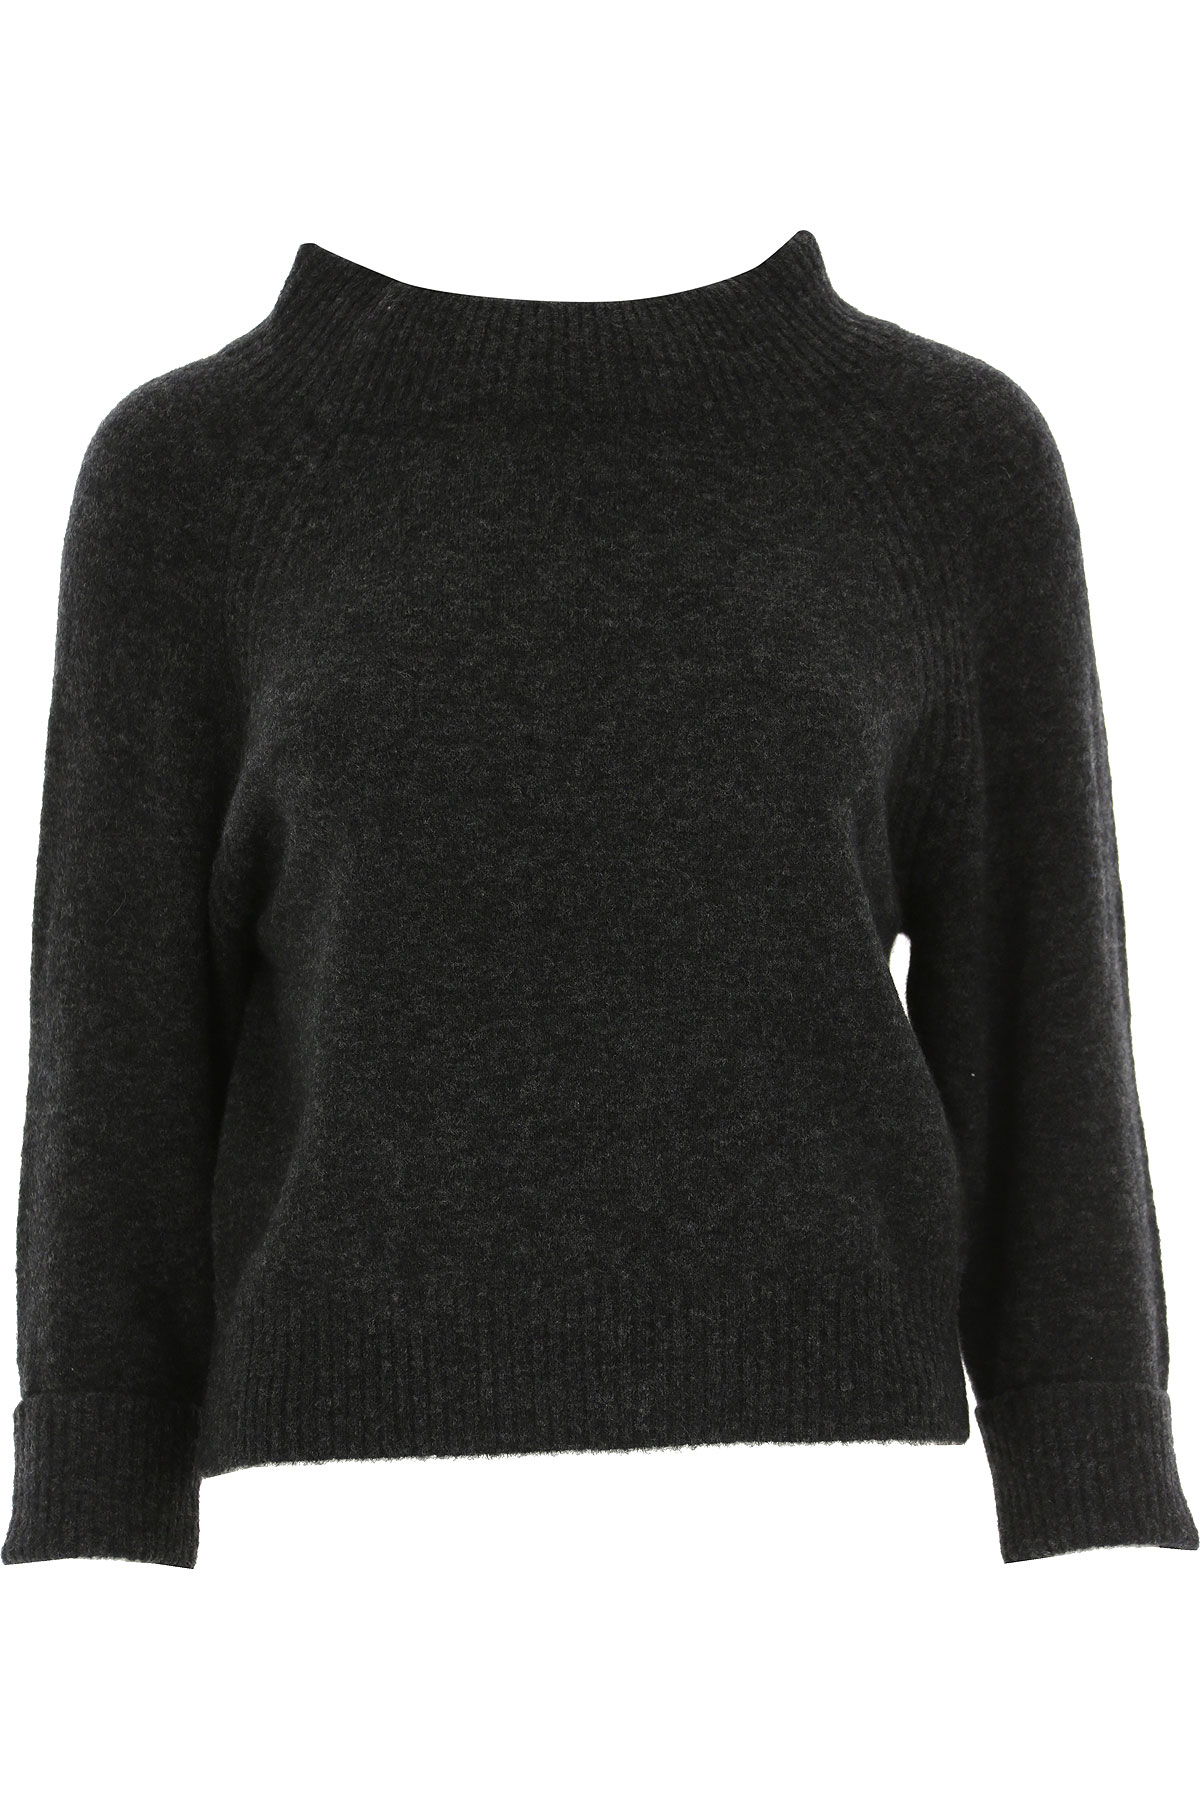 Image of 3.1 PHILLIP LIM Sweater for Women Jumper, Grey, polyamide, 2017, 4 6